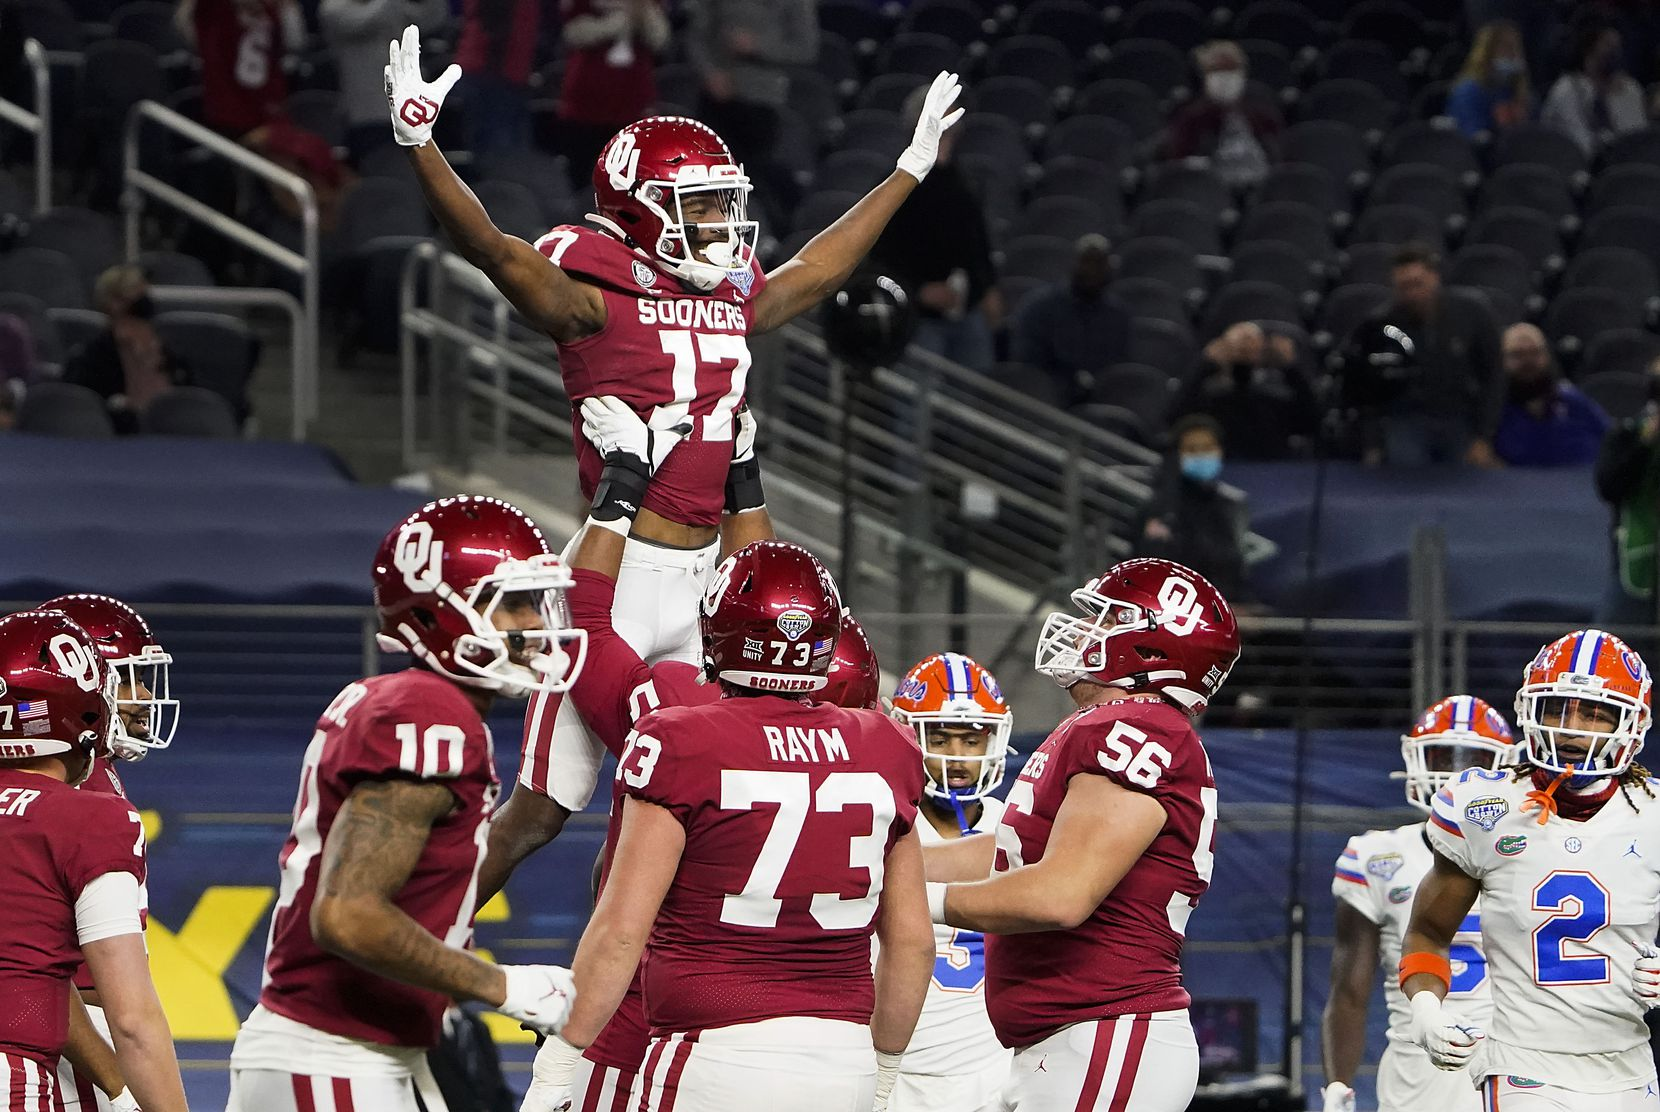 Oklahoma wide receiver Marvin Mims (17) celebrates with offensive lineman Tyrese Robinson (52) after catching a 27-yard touchdown pass during the first half of the Cotton Bowl Classic against Florida at AT&T Stadium on Wednesday, Dec. 30, 2020, in Arlington. (Smiley N. Pool/The Dallas Morning News)